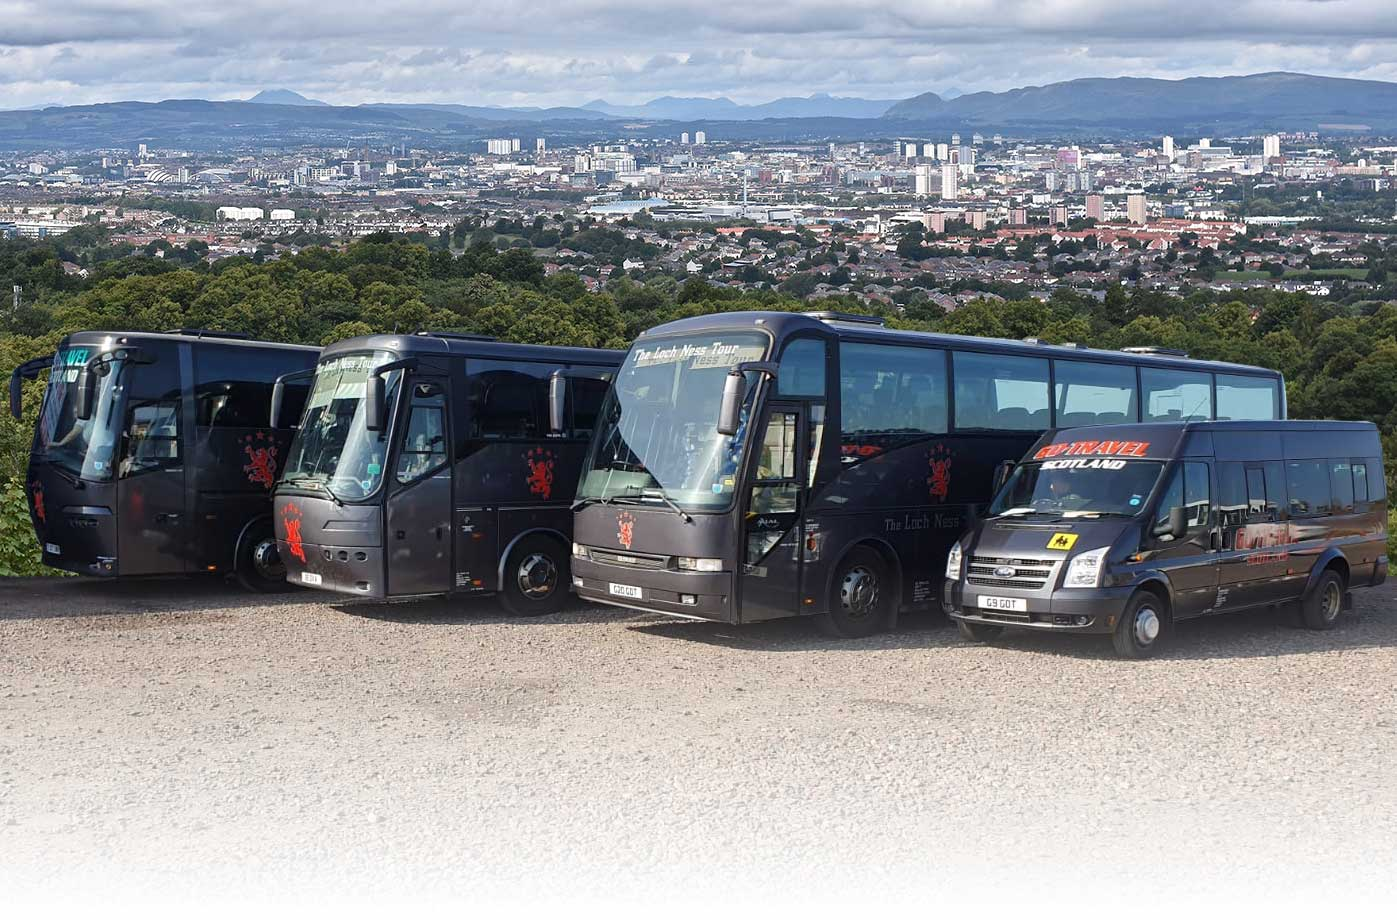 Lanarkshire Glasgow Minibus and Coach Hire - Go Travel Scotland